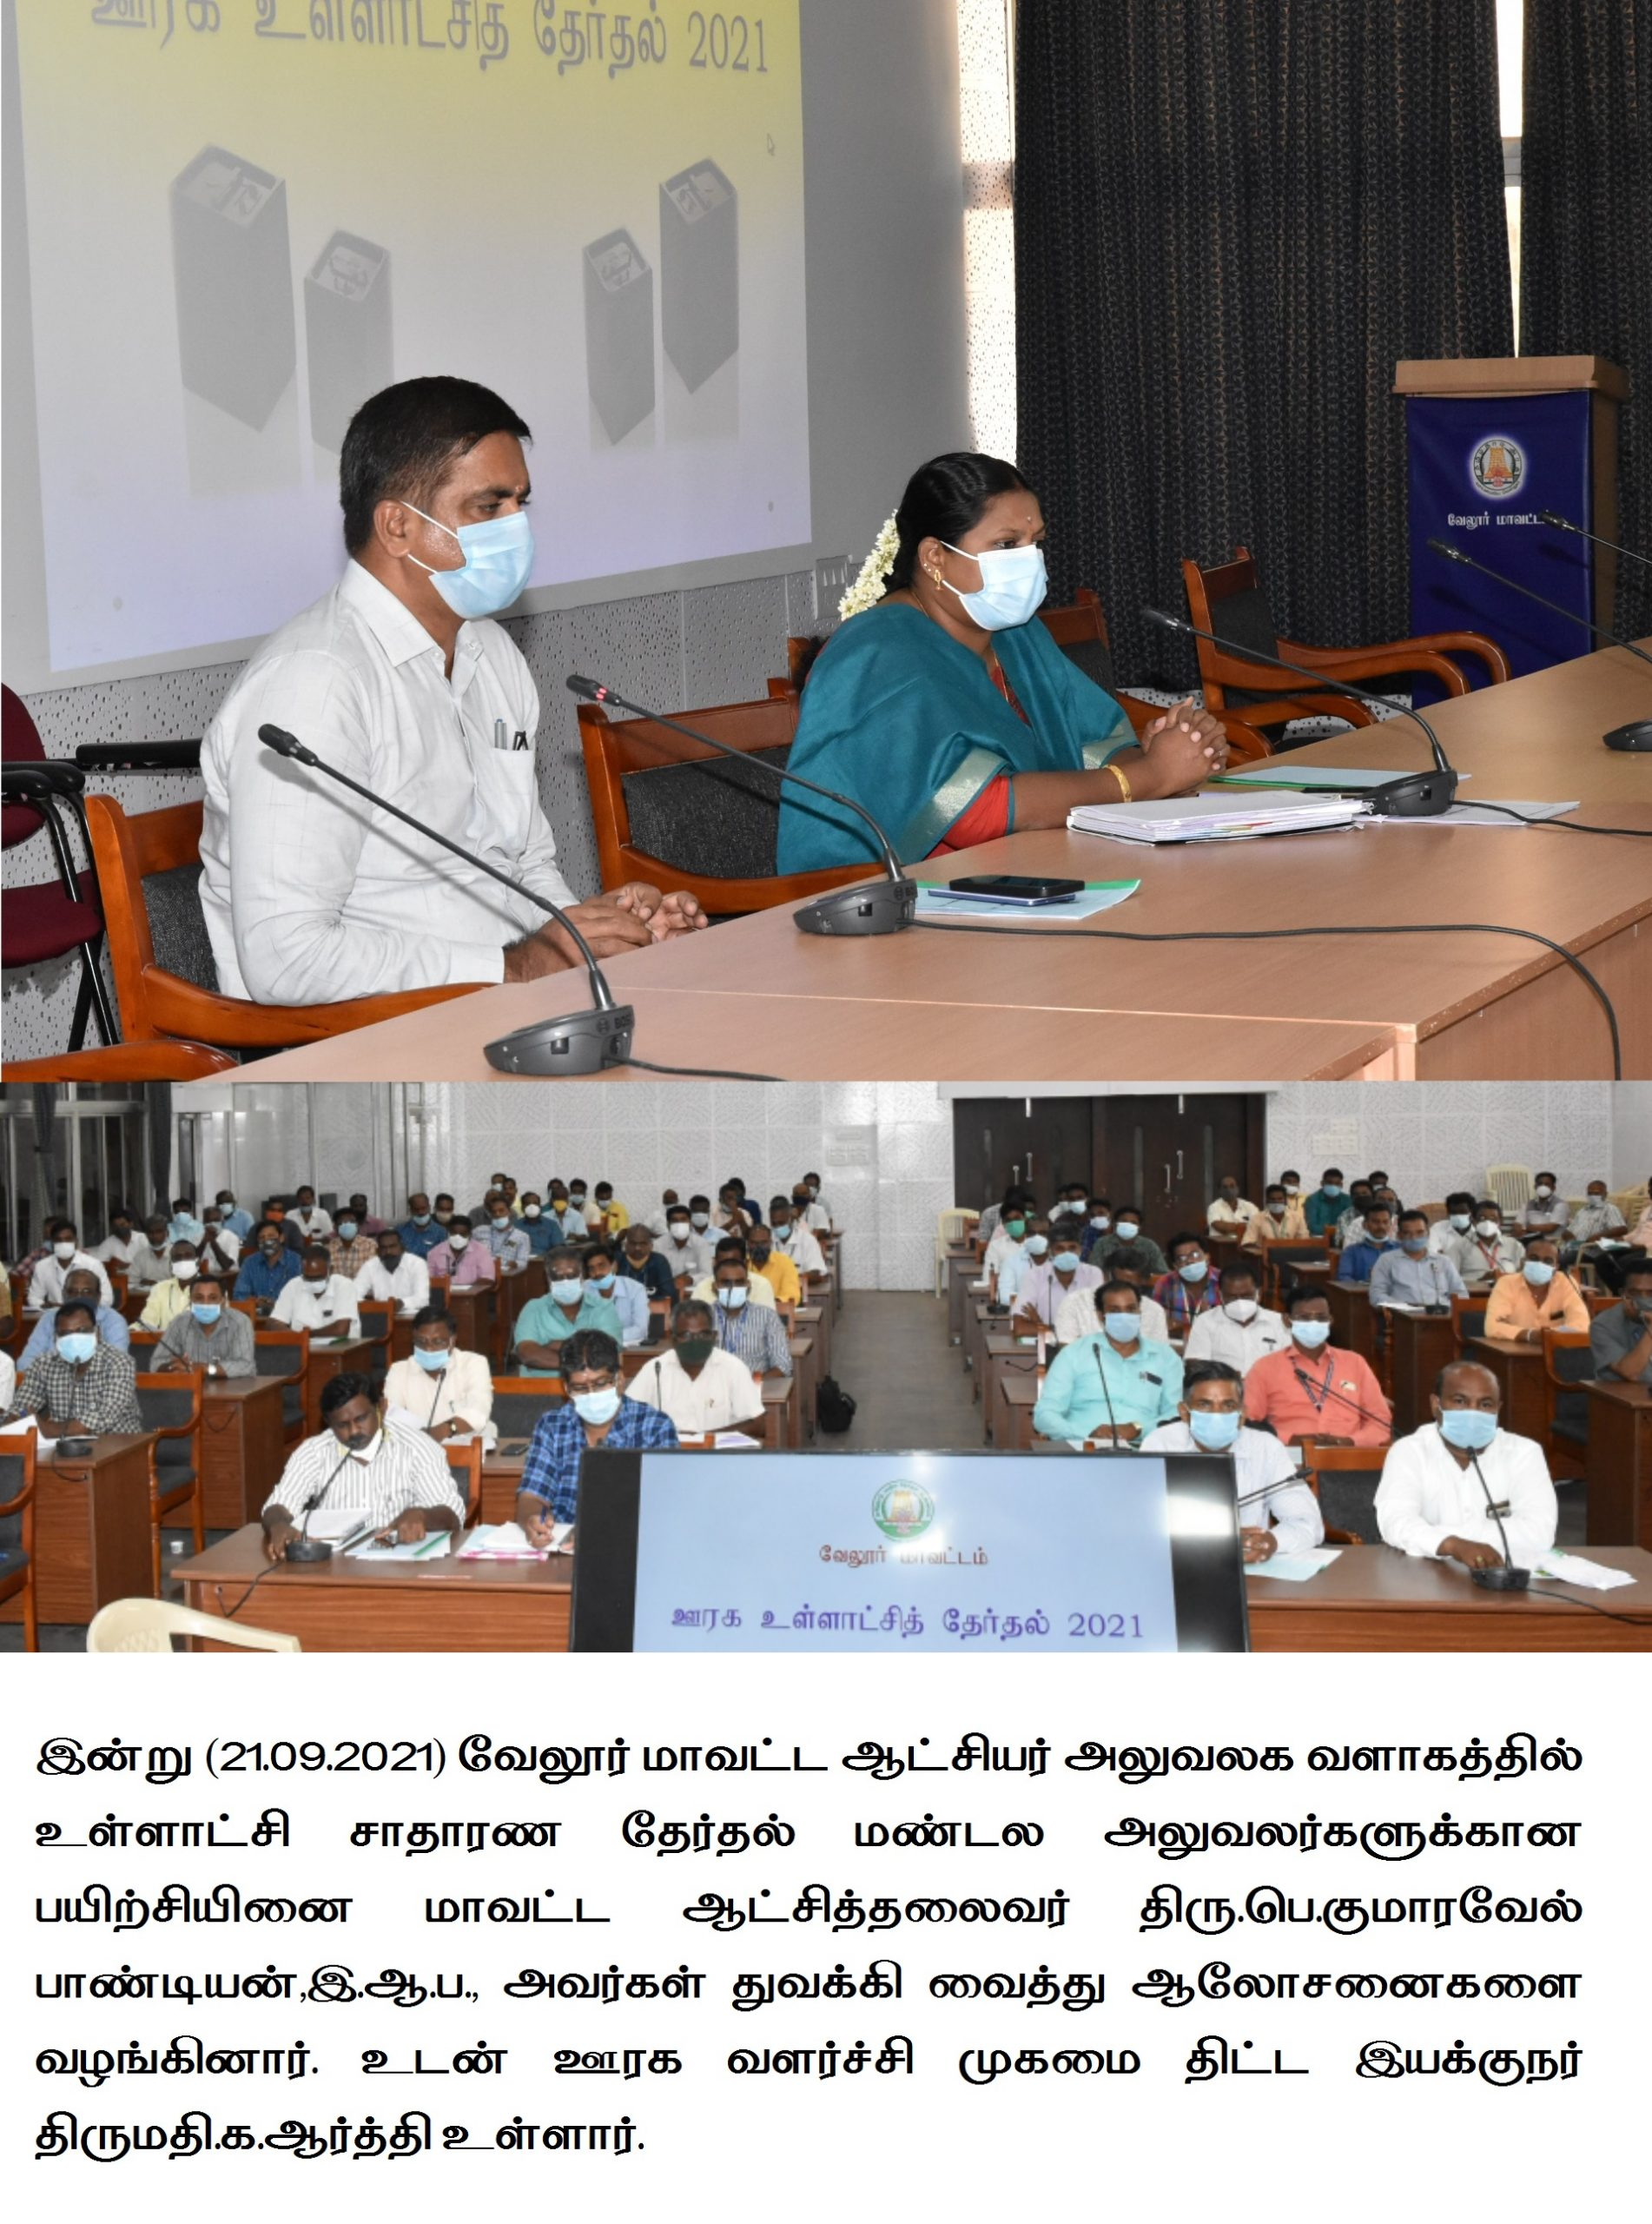 District Collector Inaugurated Rural Localbody Election 2021 training to Presiding Officer 21/09/2021